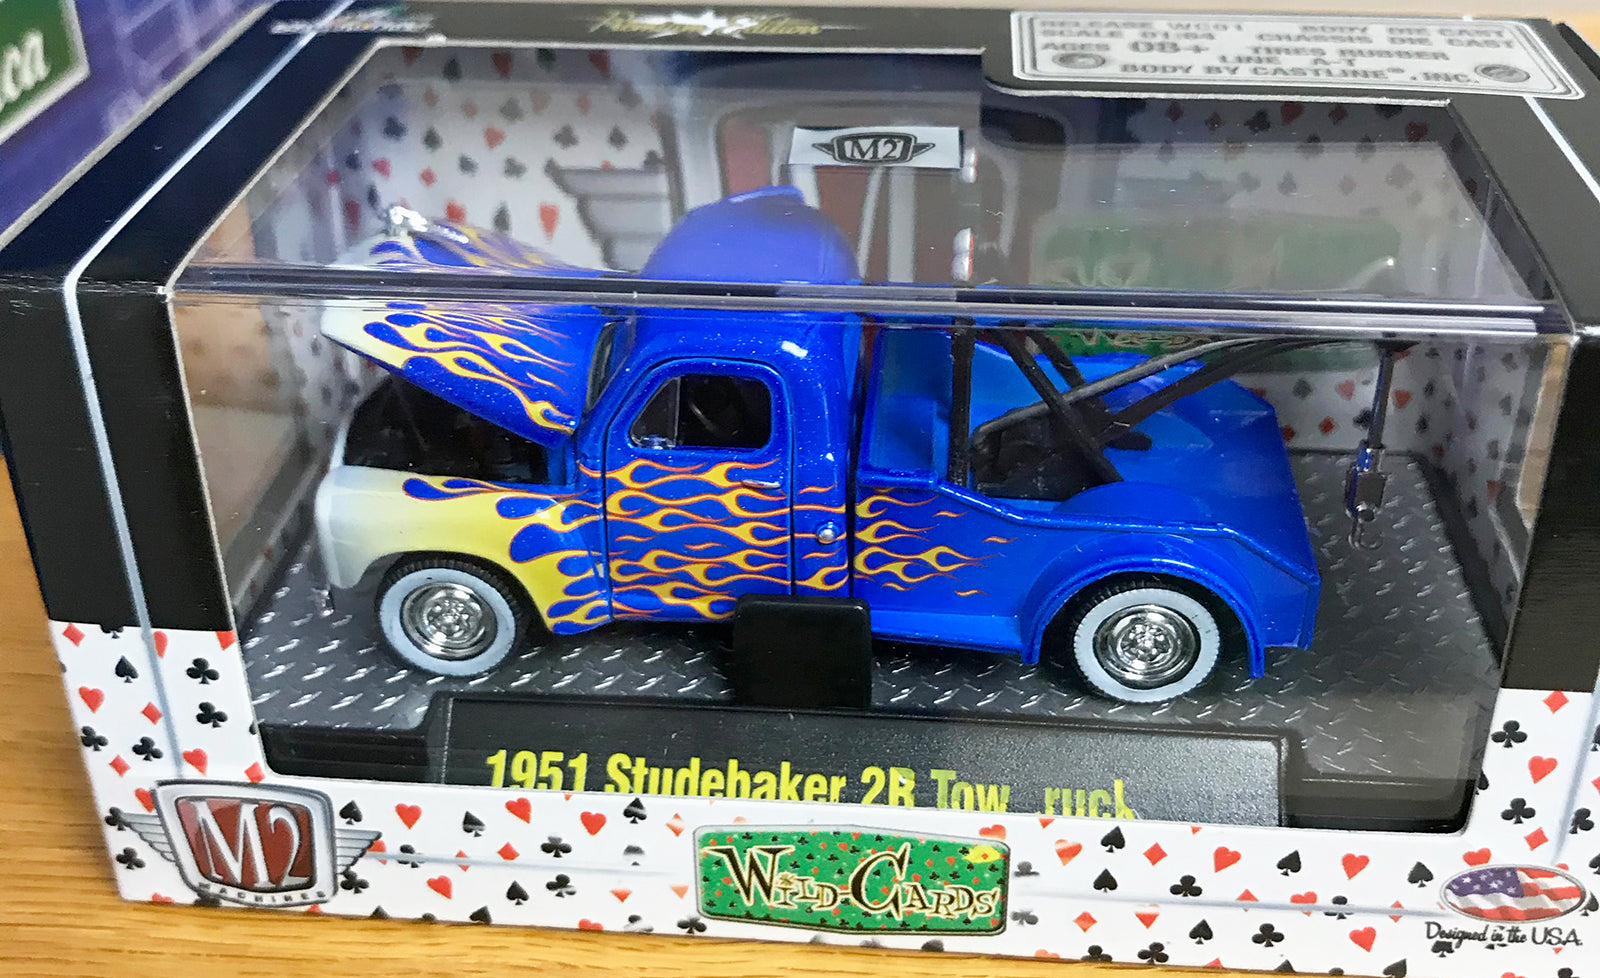 S 1951 Studebaker 2R Tow Truck - Blue